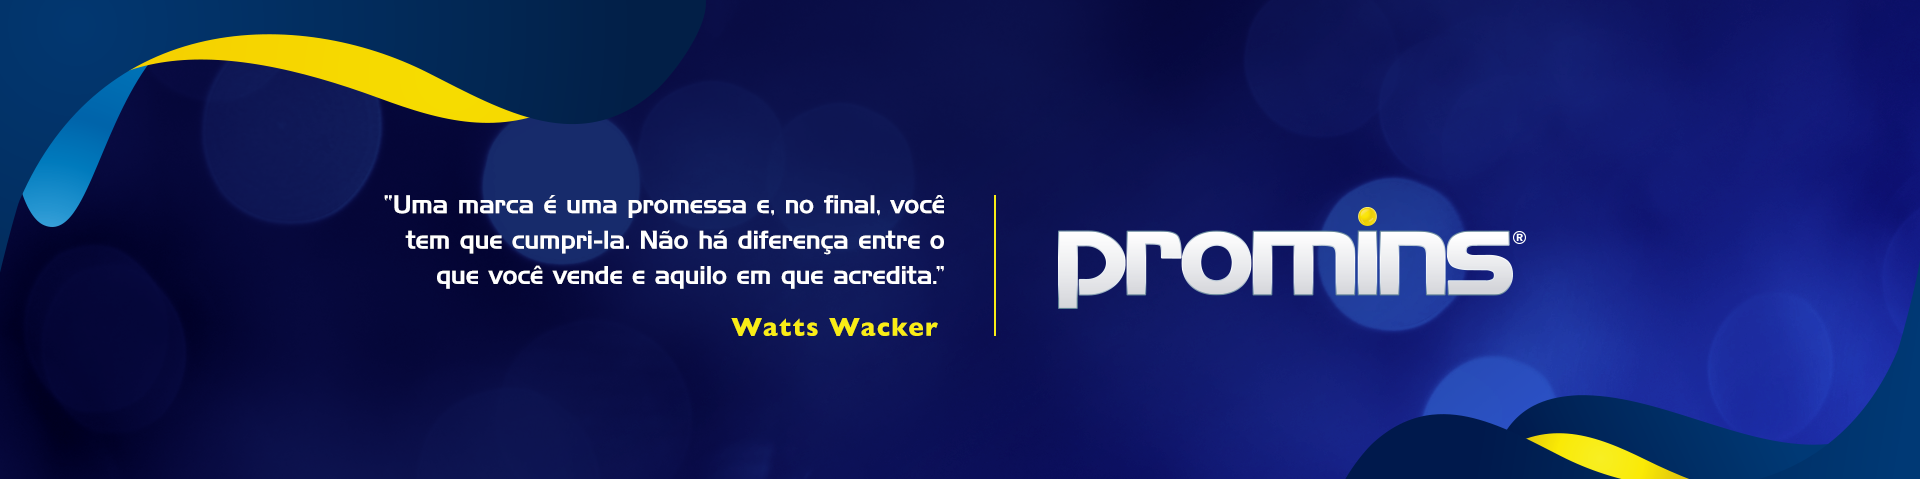 Watts Wacker